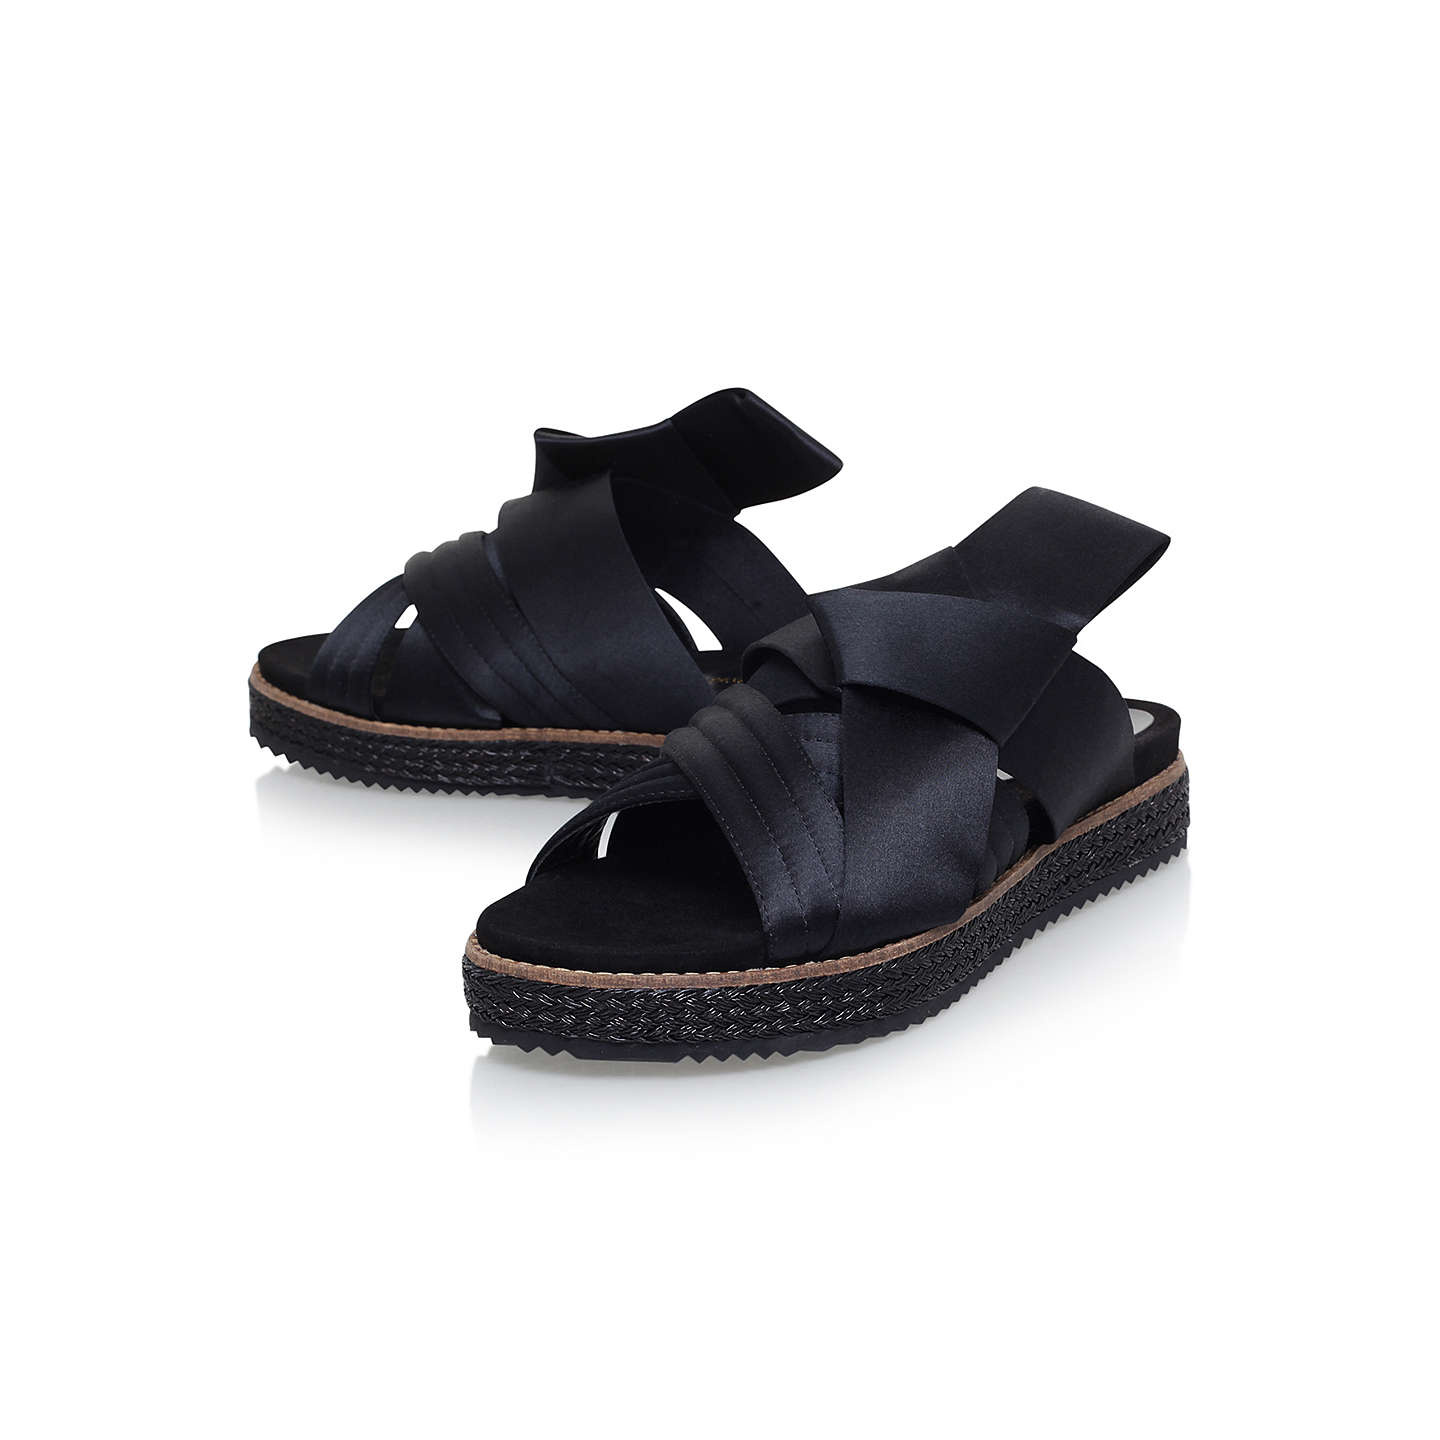 BuyKurt Geiger Bloom Bow Sandals, Black, 3 Online at johnlewis.com